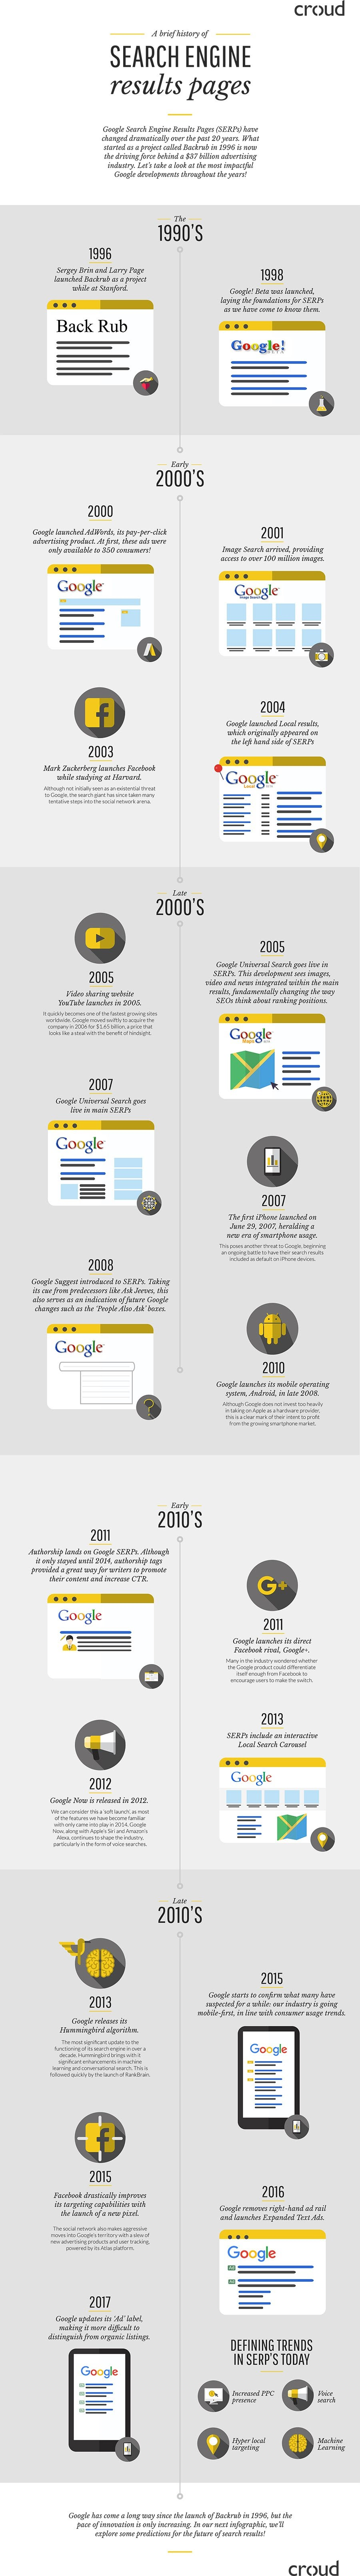 A Brief History of Search Engine Result Pages - #infographic